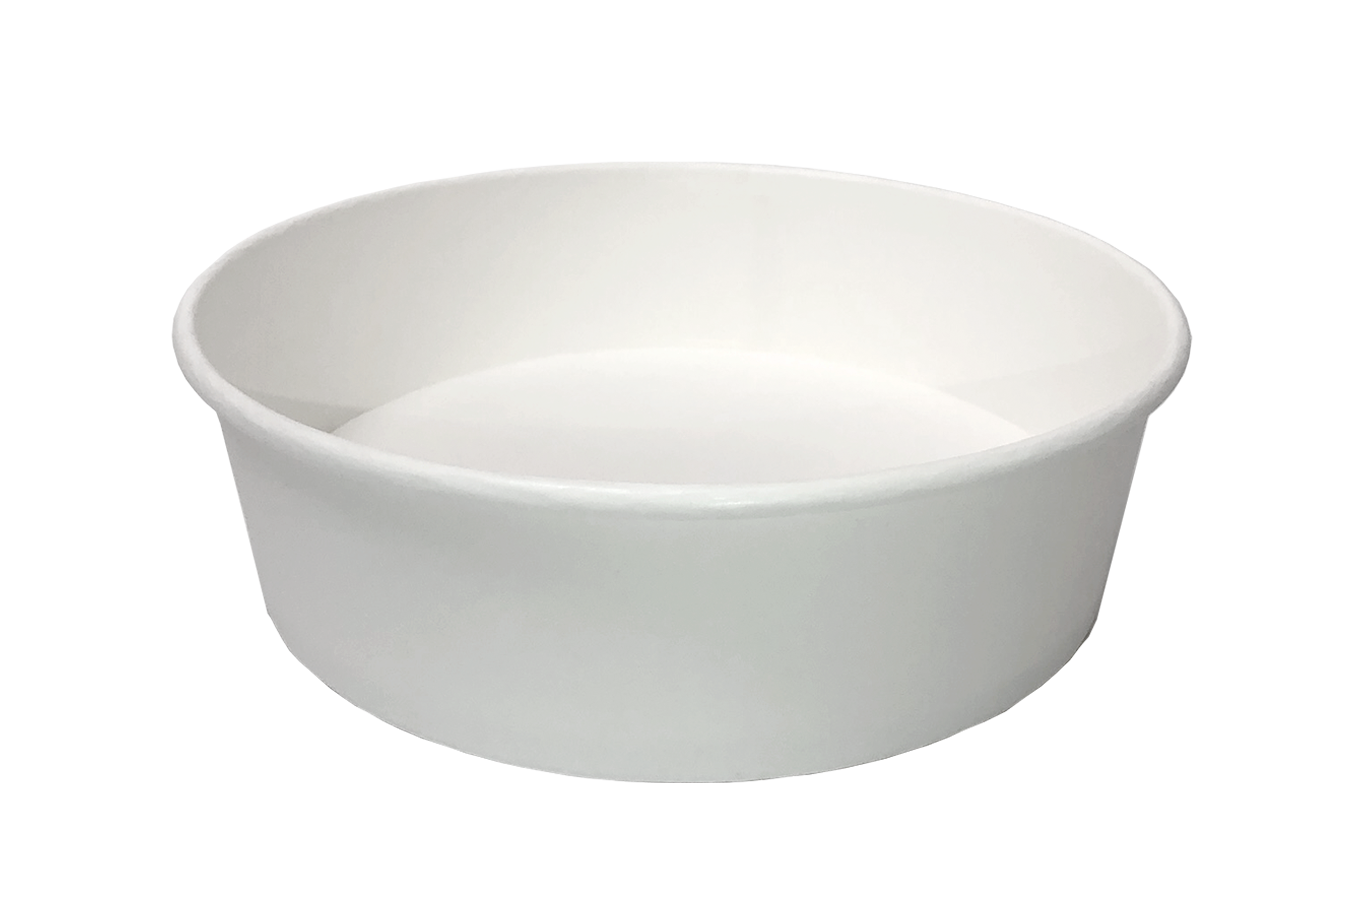 Premium takeout container white color 48 oz size Athena paper bowl by Ecoapx Inc